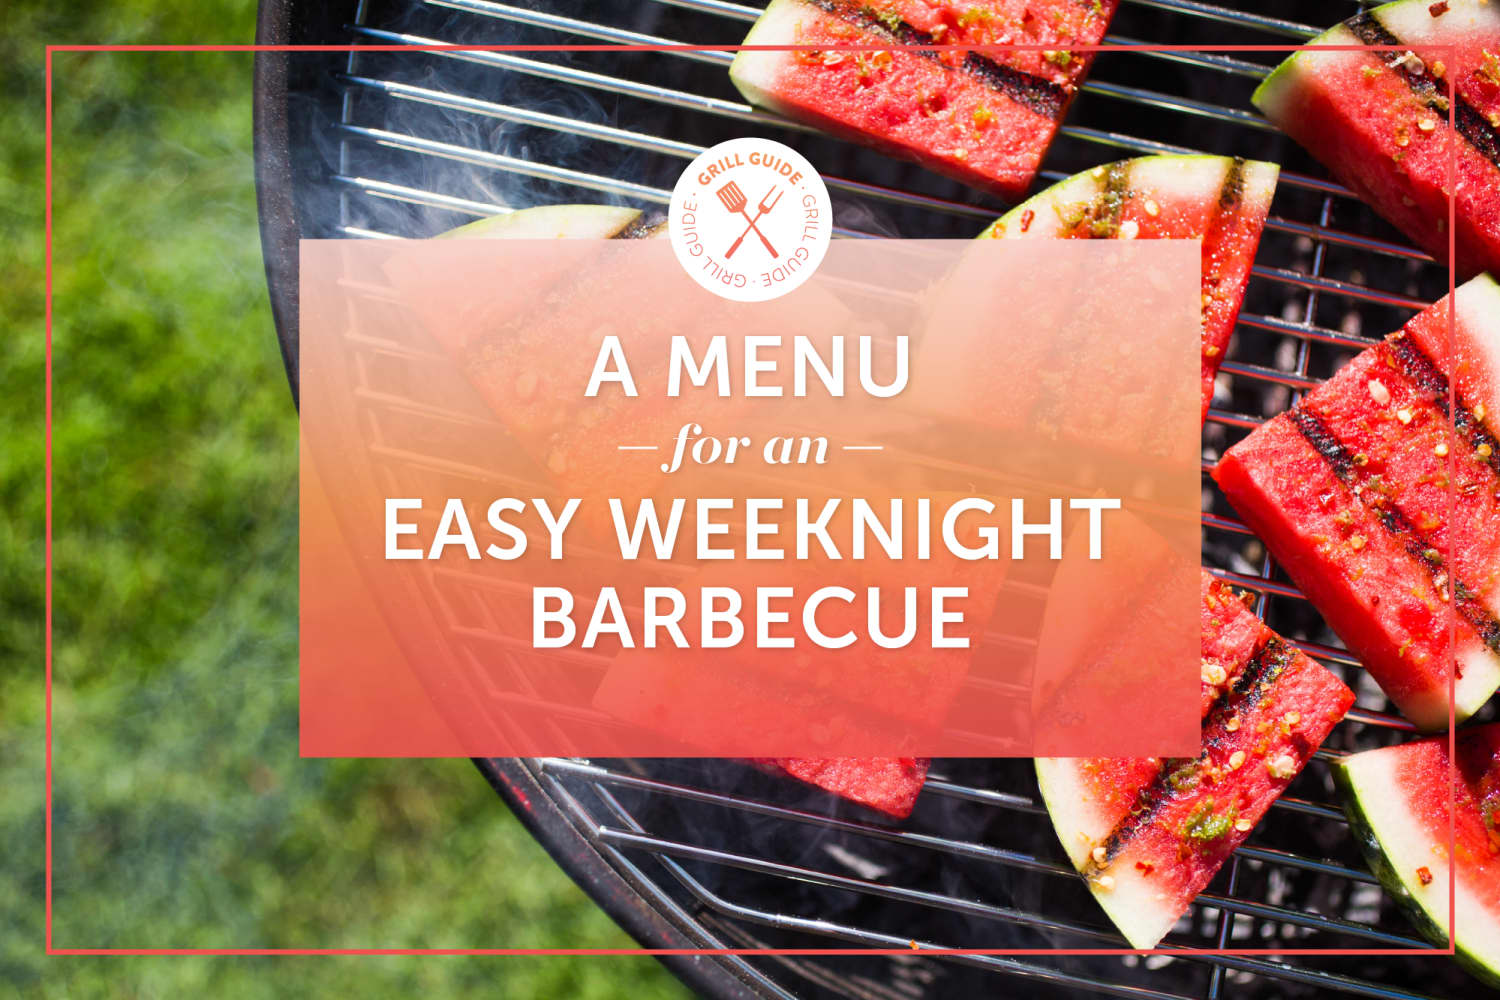 A Menu for an Easy Weeknight Barbecue